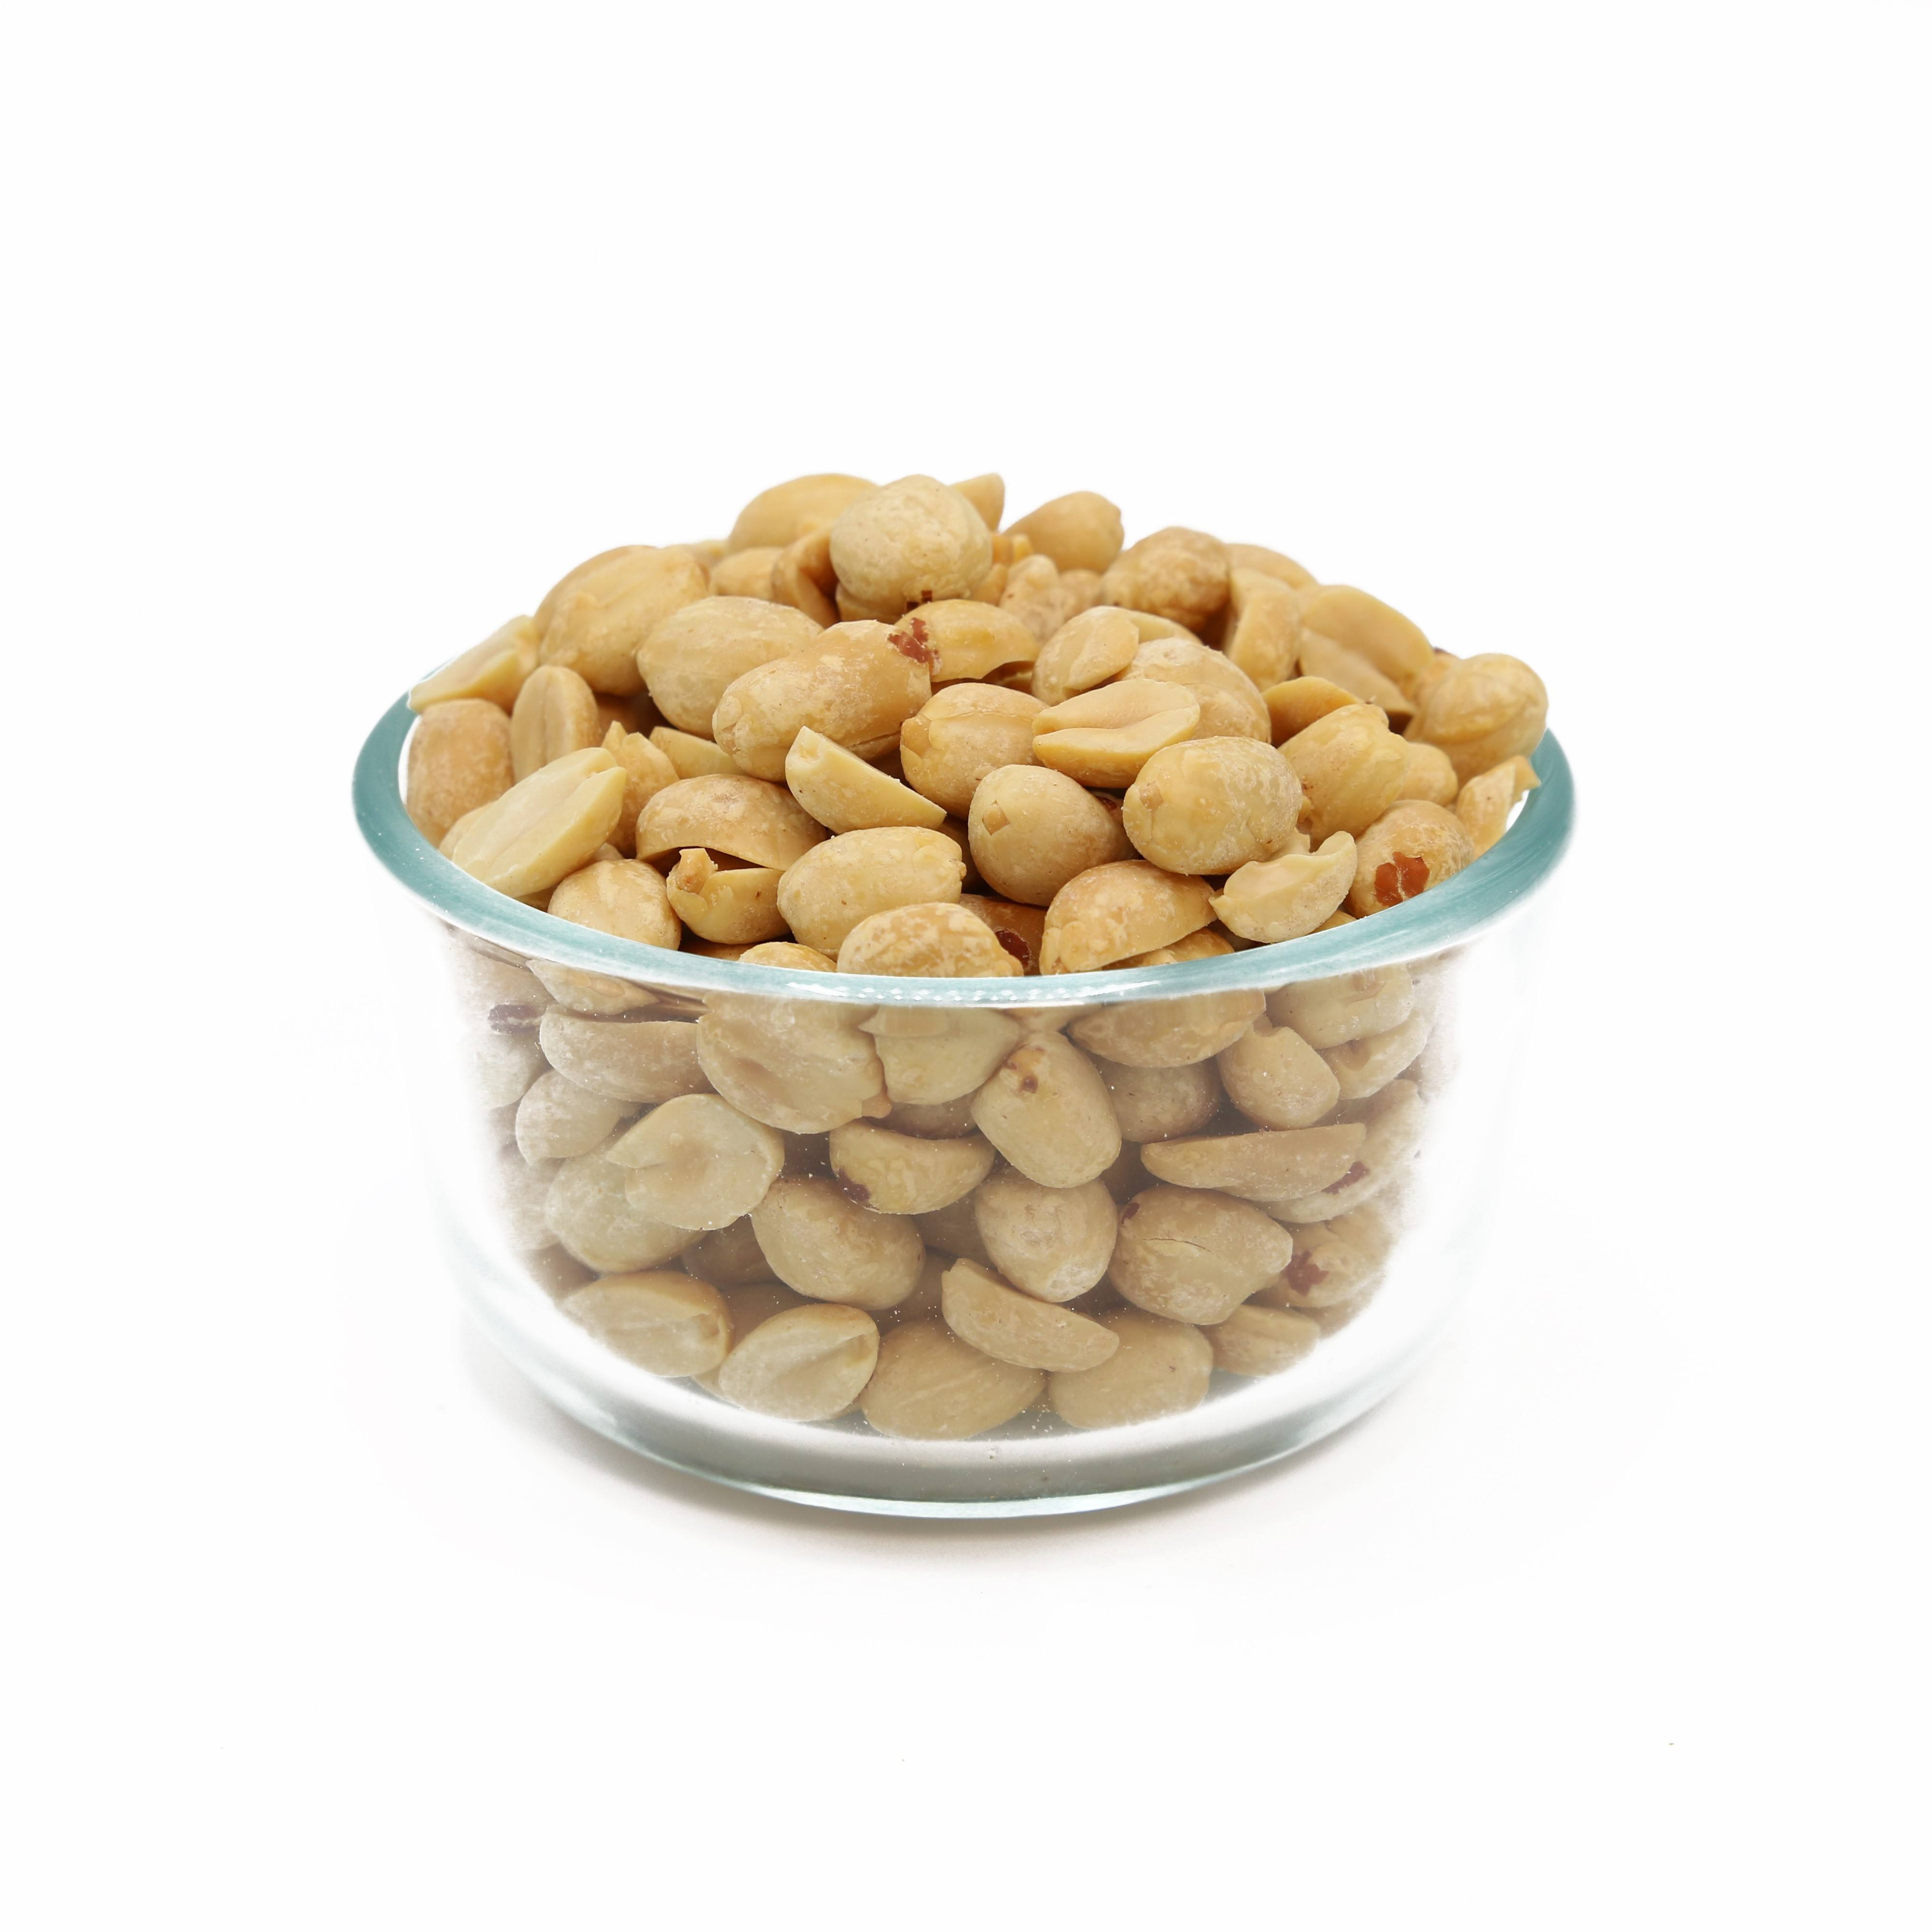 blached roast roasted peanuts no salt from America